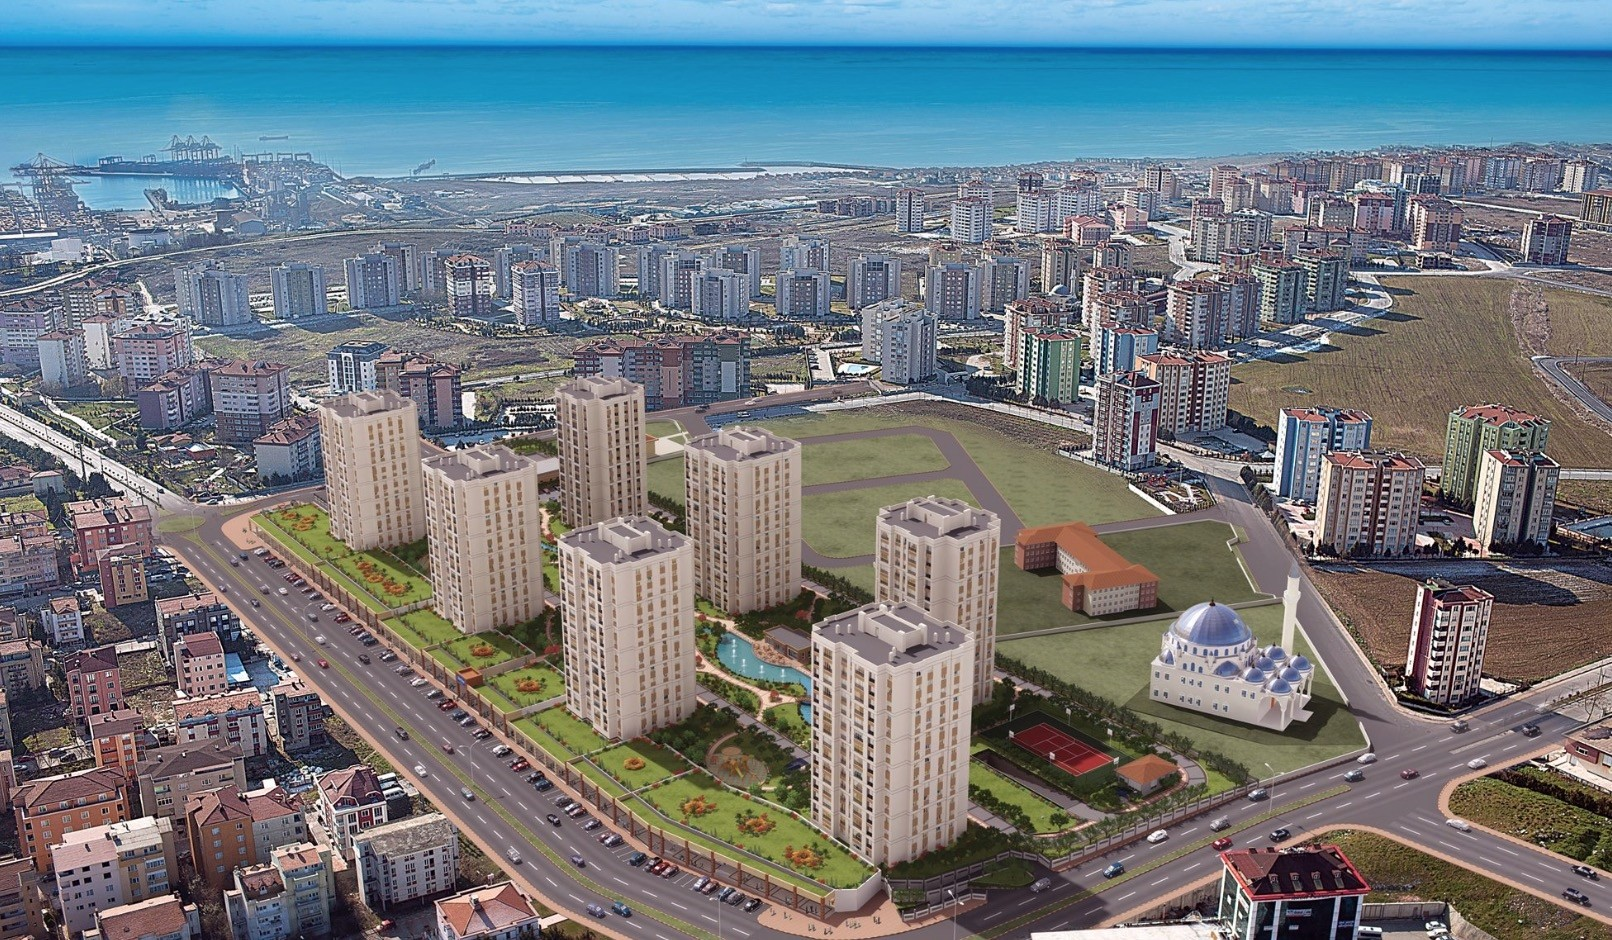 Foreigners bought 39,663 properties in Turkey last year, up from 22,234 units in 2017.